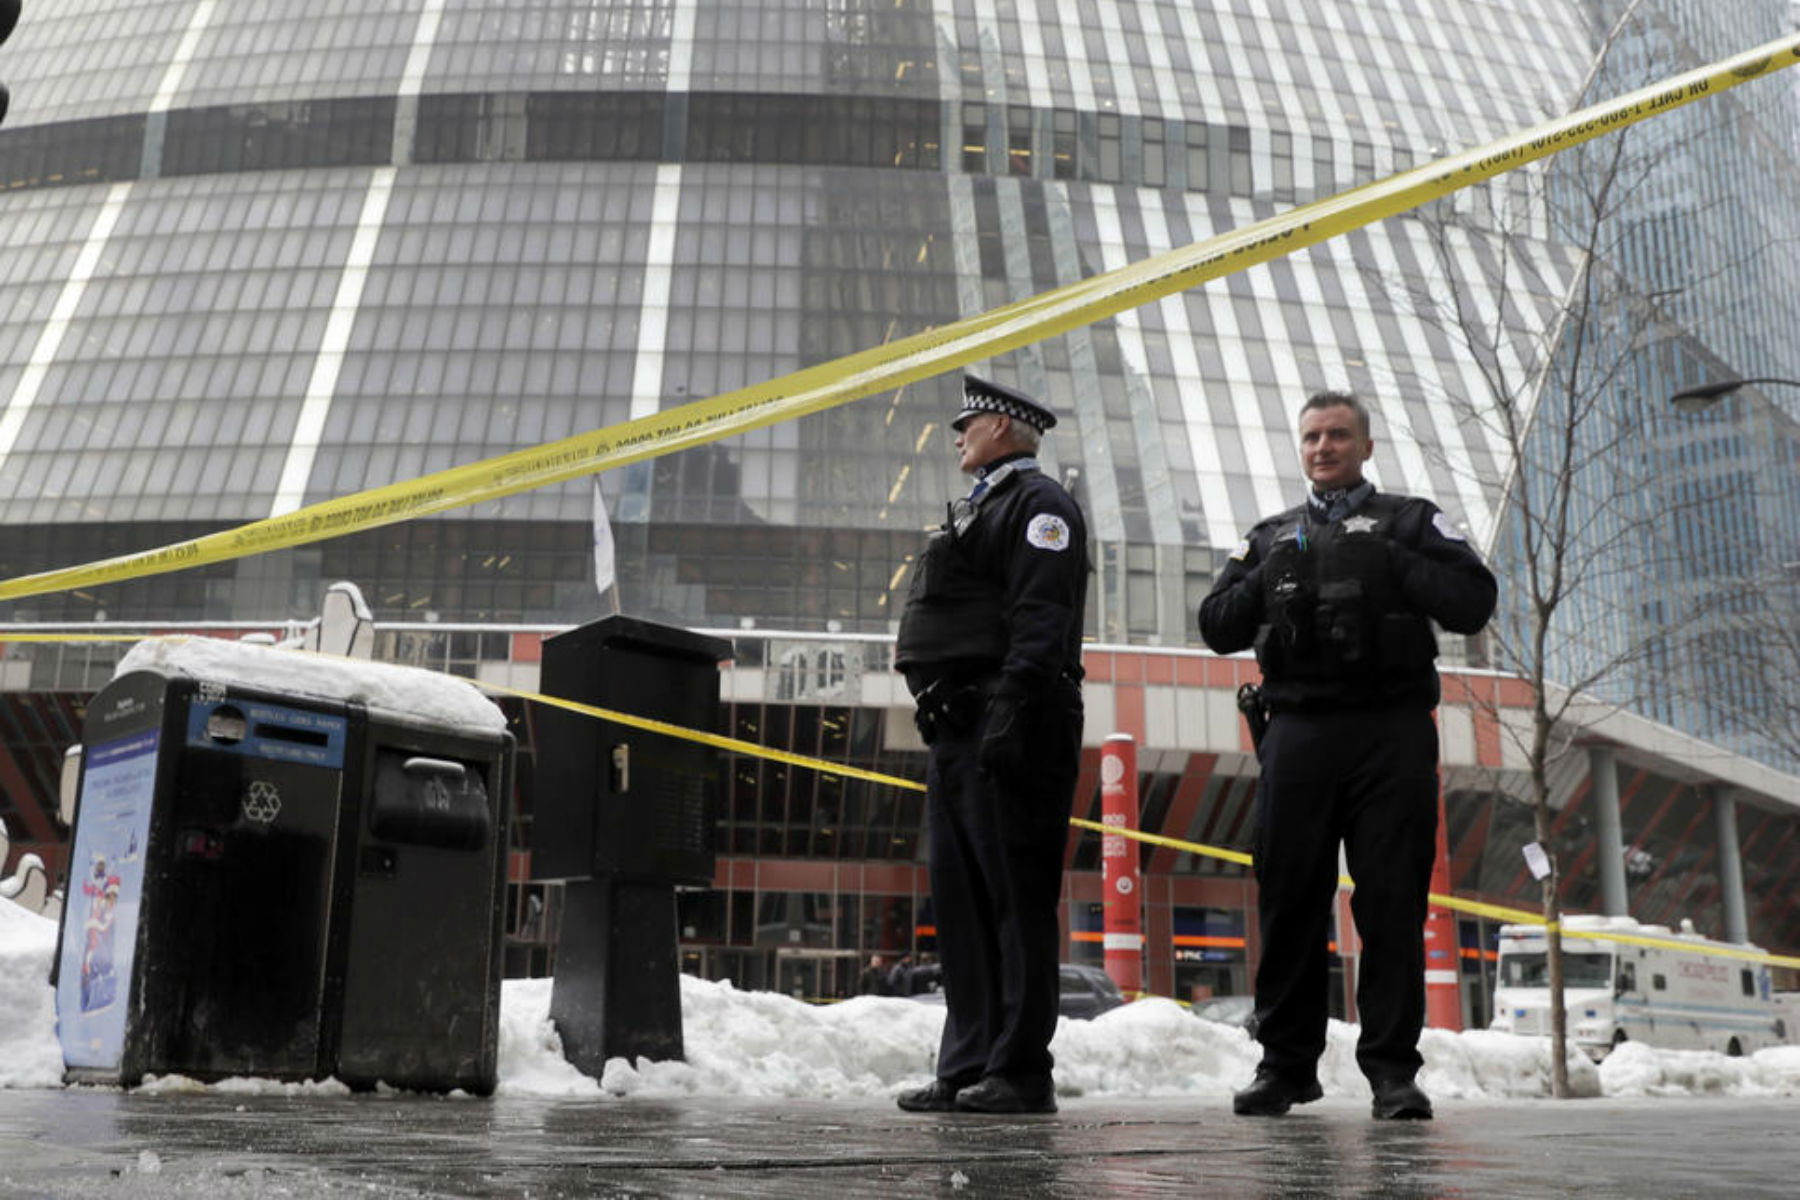 Chicago Police Commander Gunned Down at Thompson Center Pursuing a Suspect